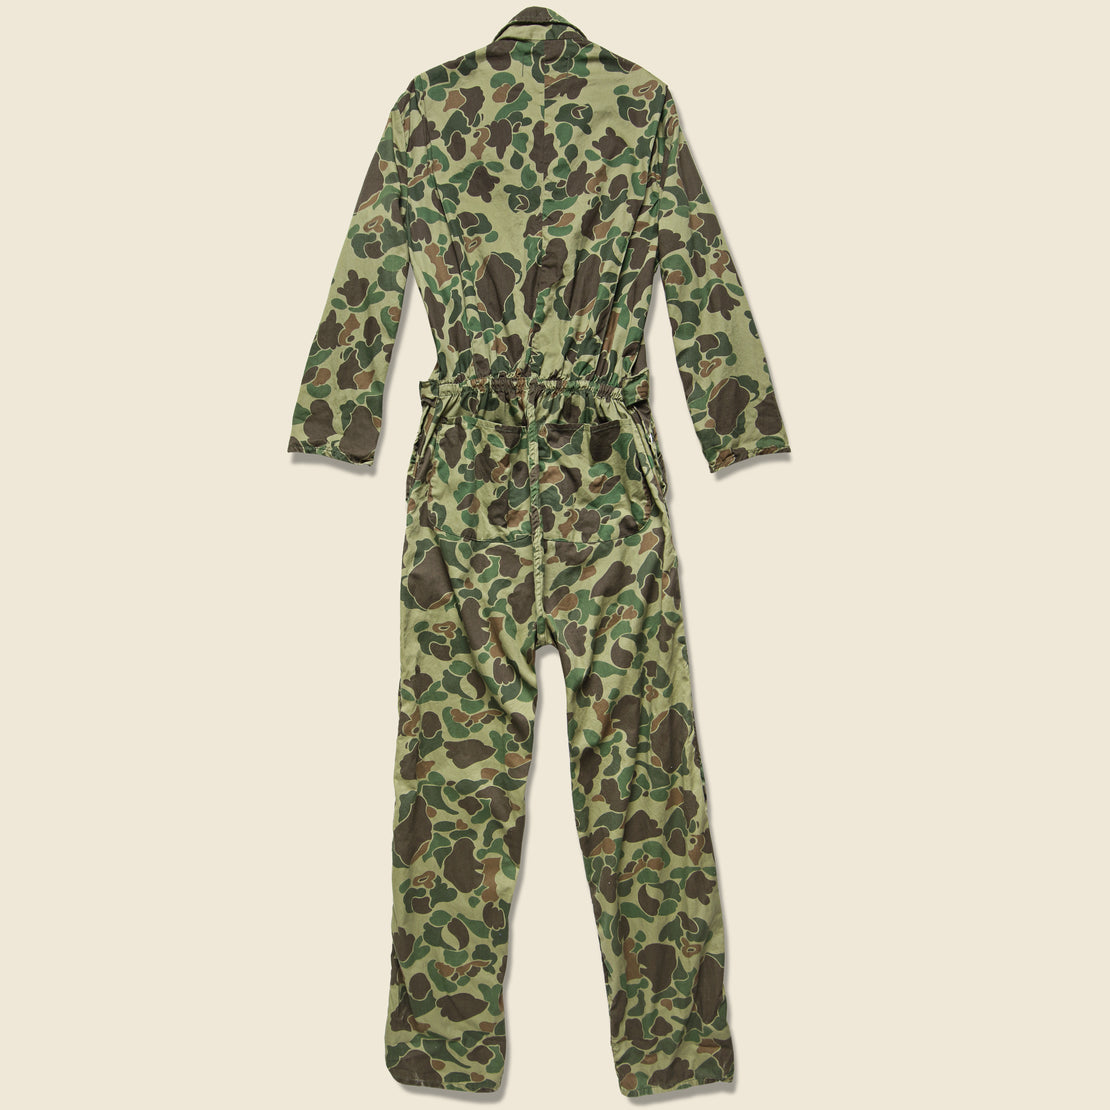 Blacksheep Camo Coveralls - Olive Drab